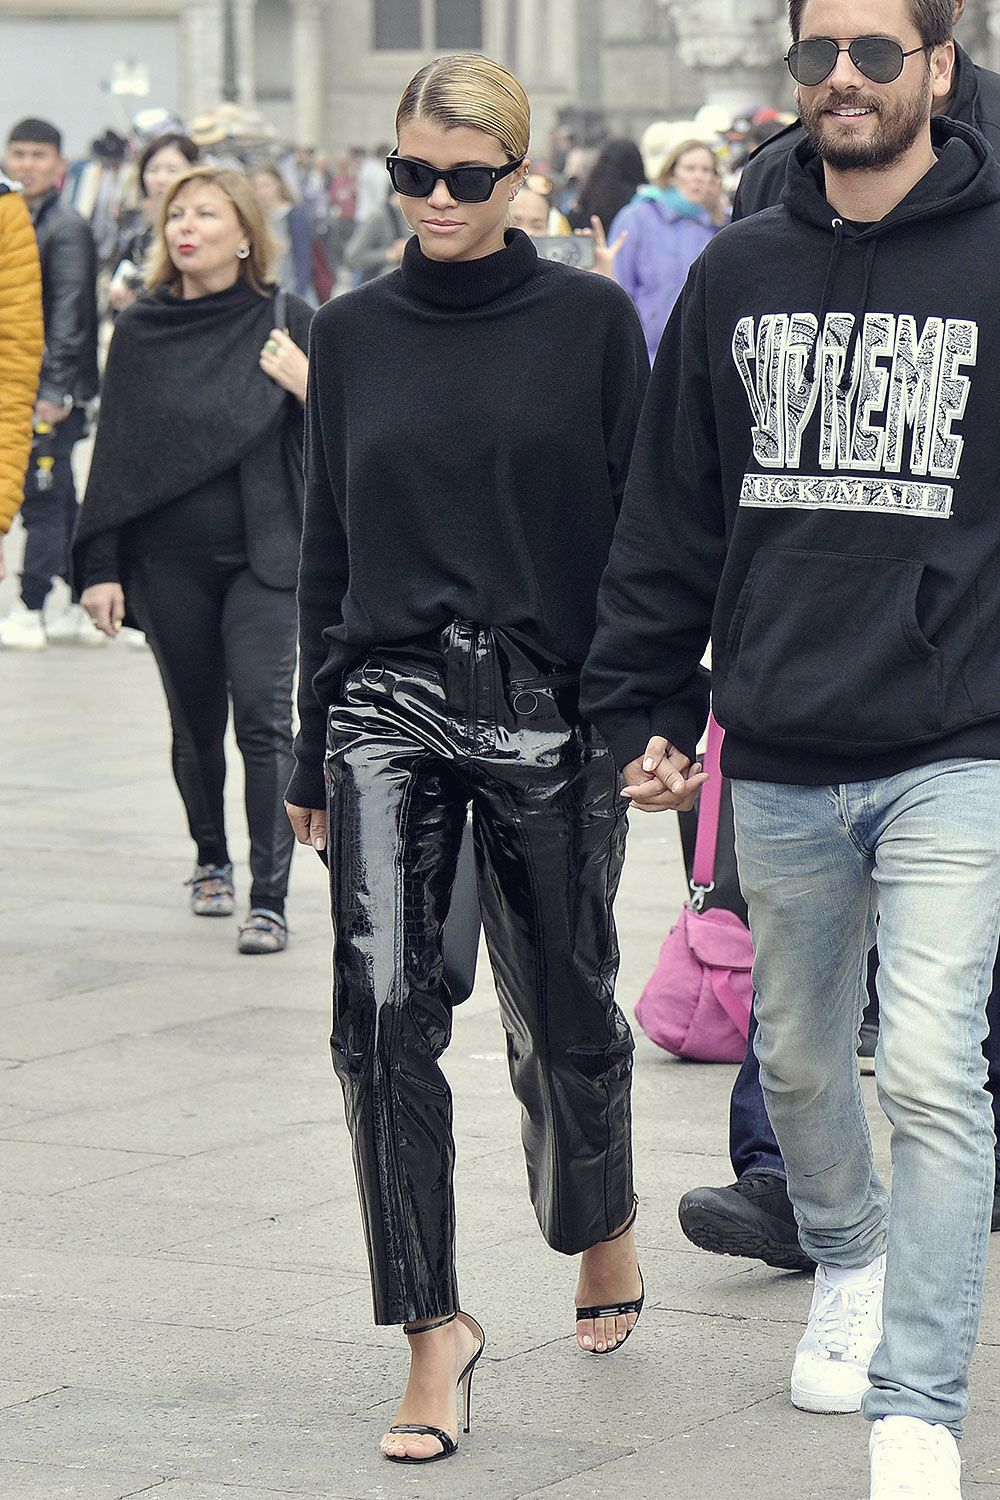 Sofia Richie out in Venice | Sofia richie, Trendy outfits